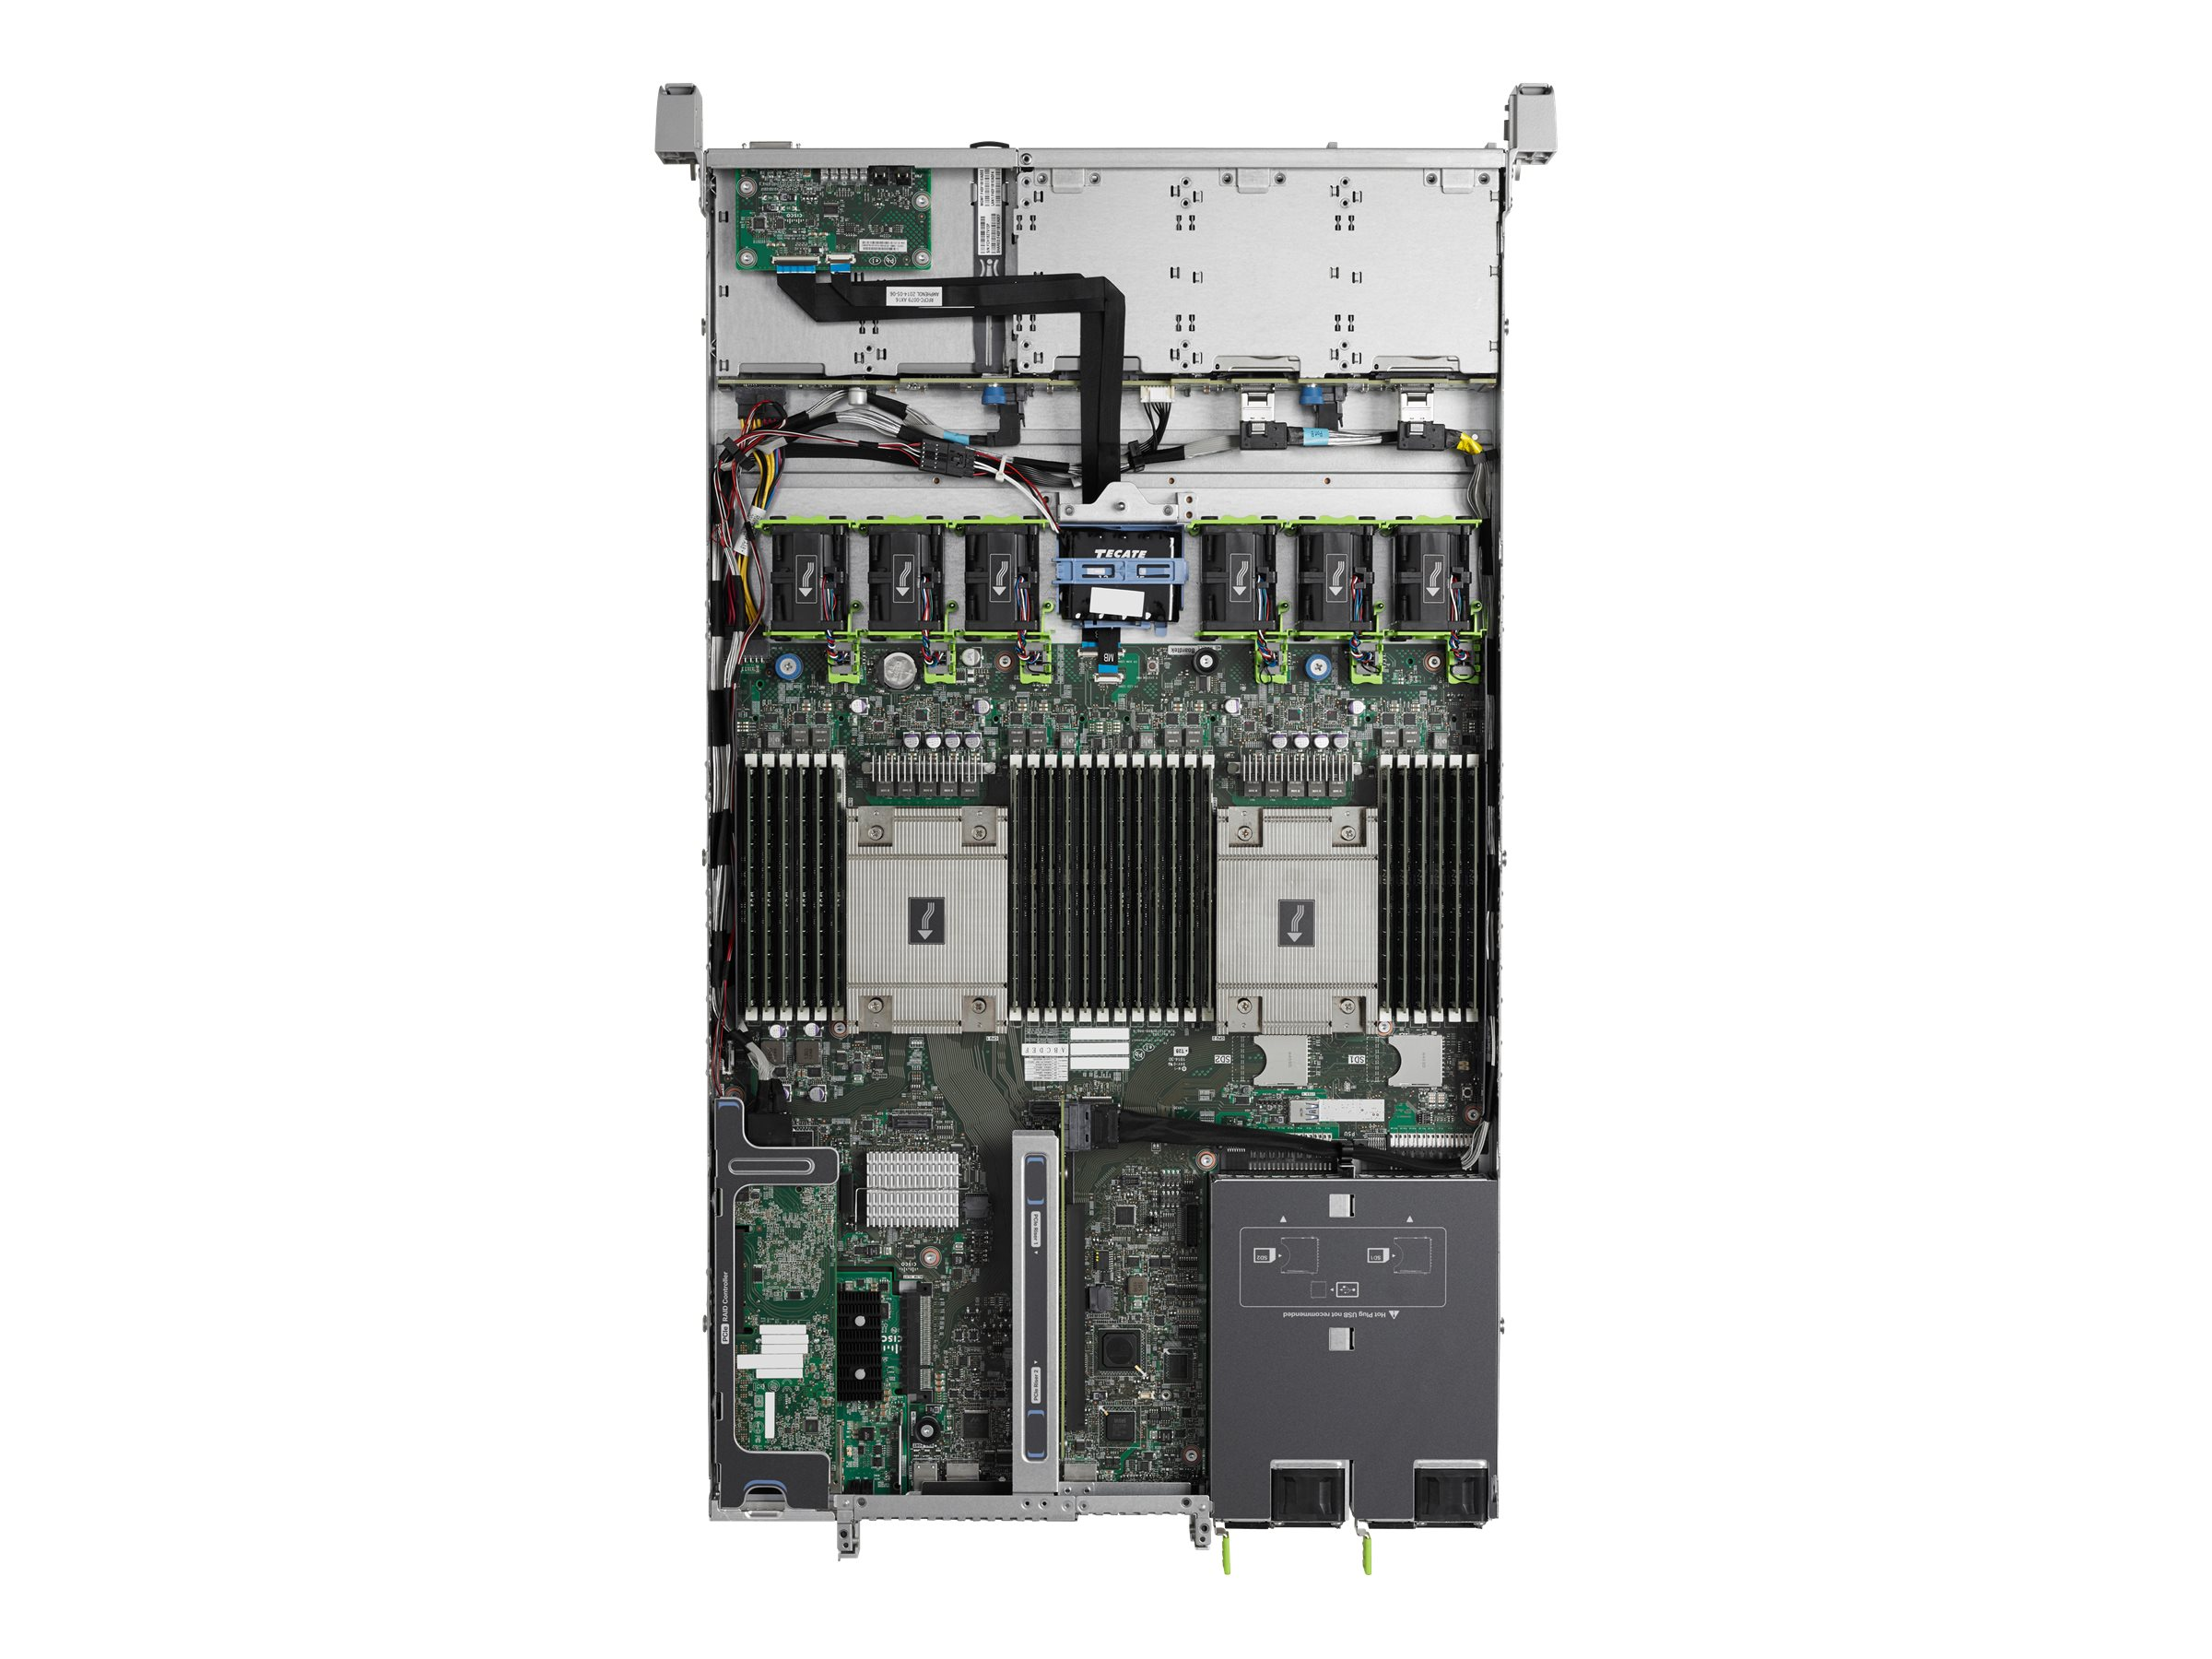 Cisco UCS Smart Play Select C220 M4S Advanced (2x)E5-2670 v3 2.3GHz 128GB 8x2.5Bays VIC1227 2x10Gb 2x770W, UCS-SPL-C220M4-A2